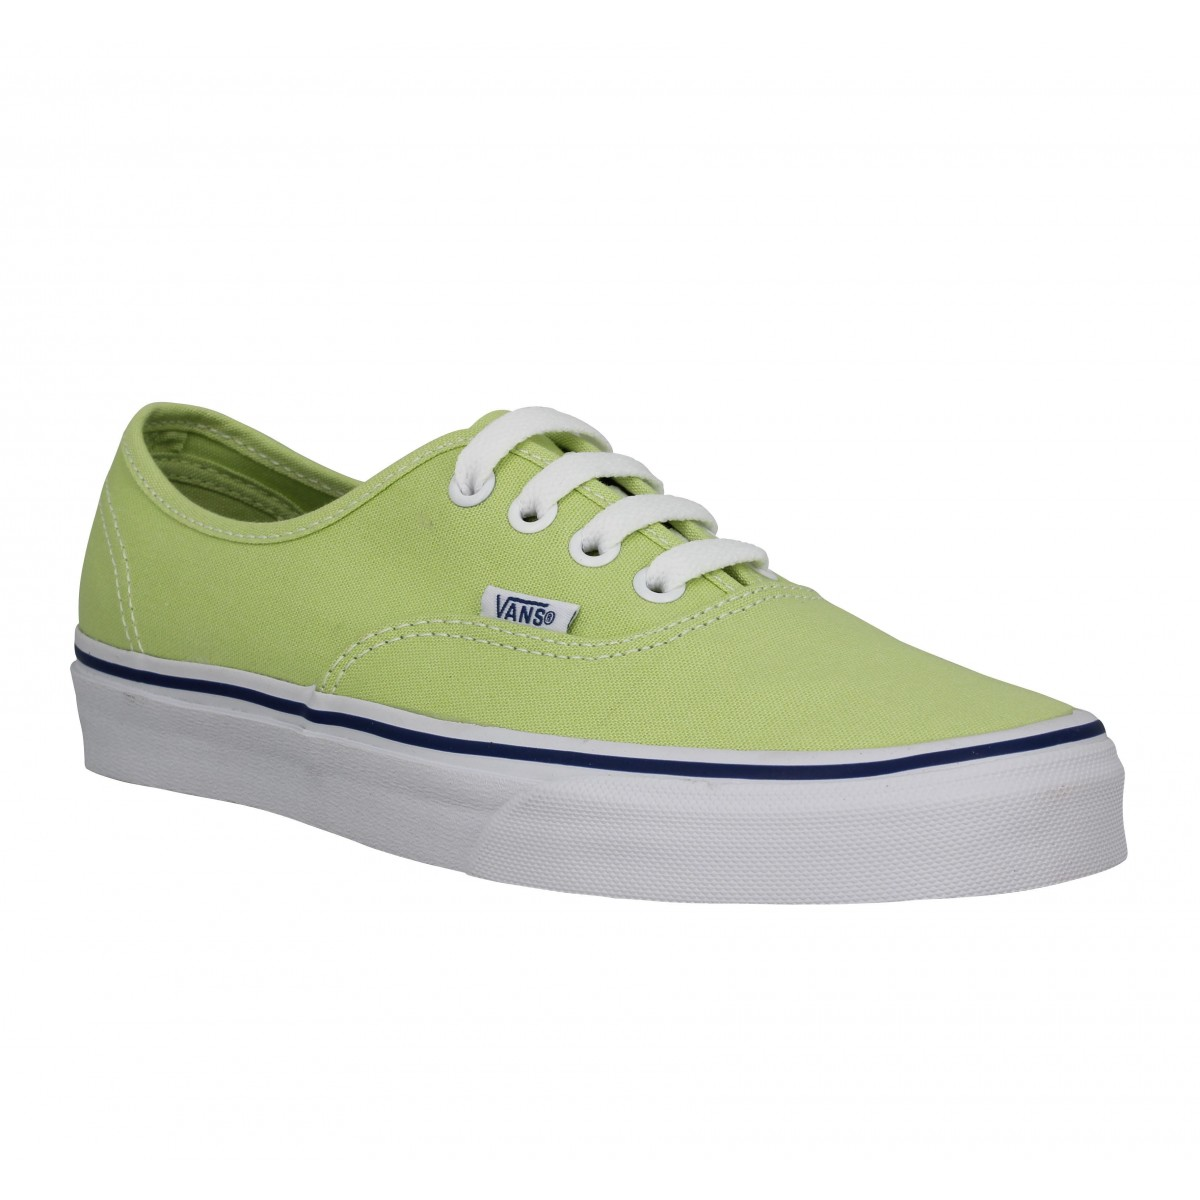 Baskets VANS Authentic toile Femme Citron Vert